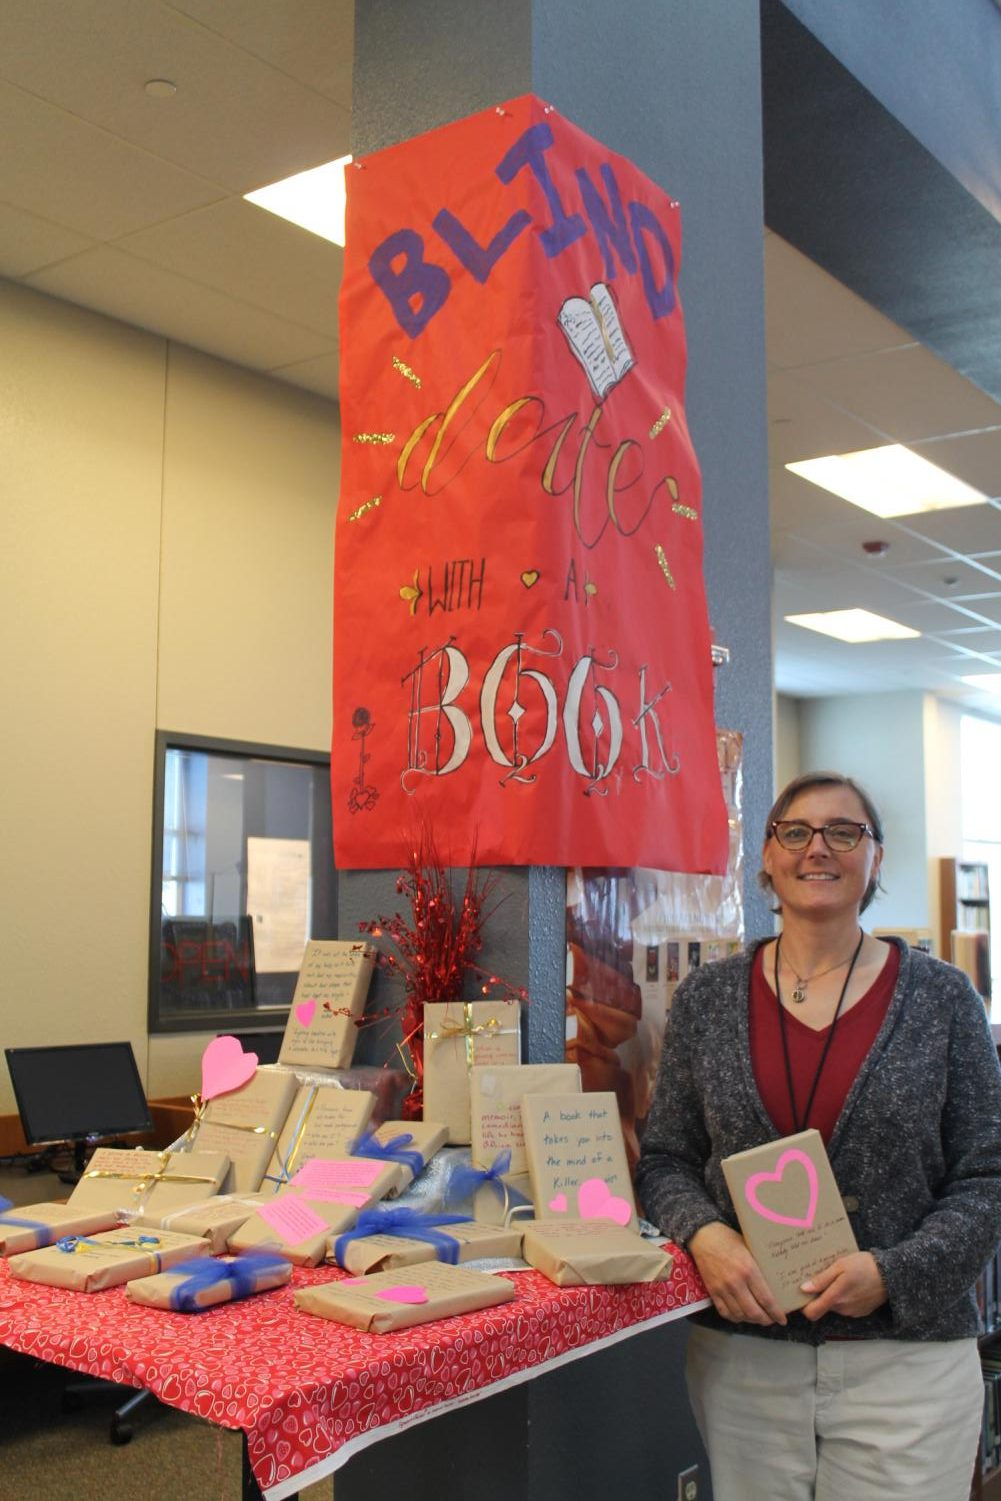 Assistant librarian Sarah Cimino holds one of the wrapped books for